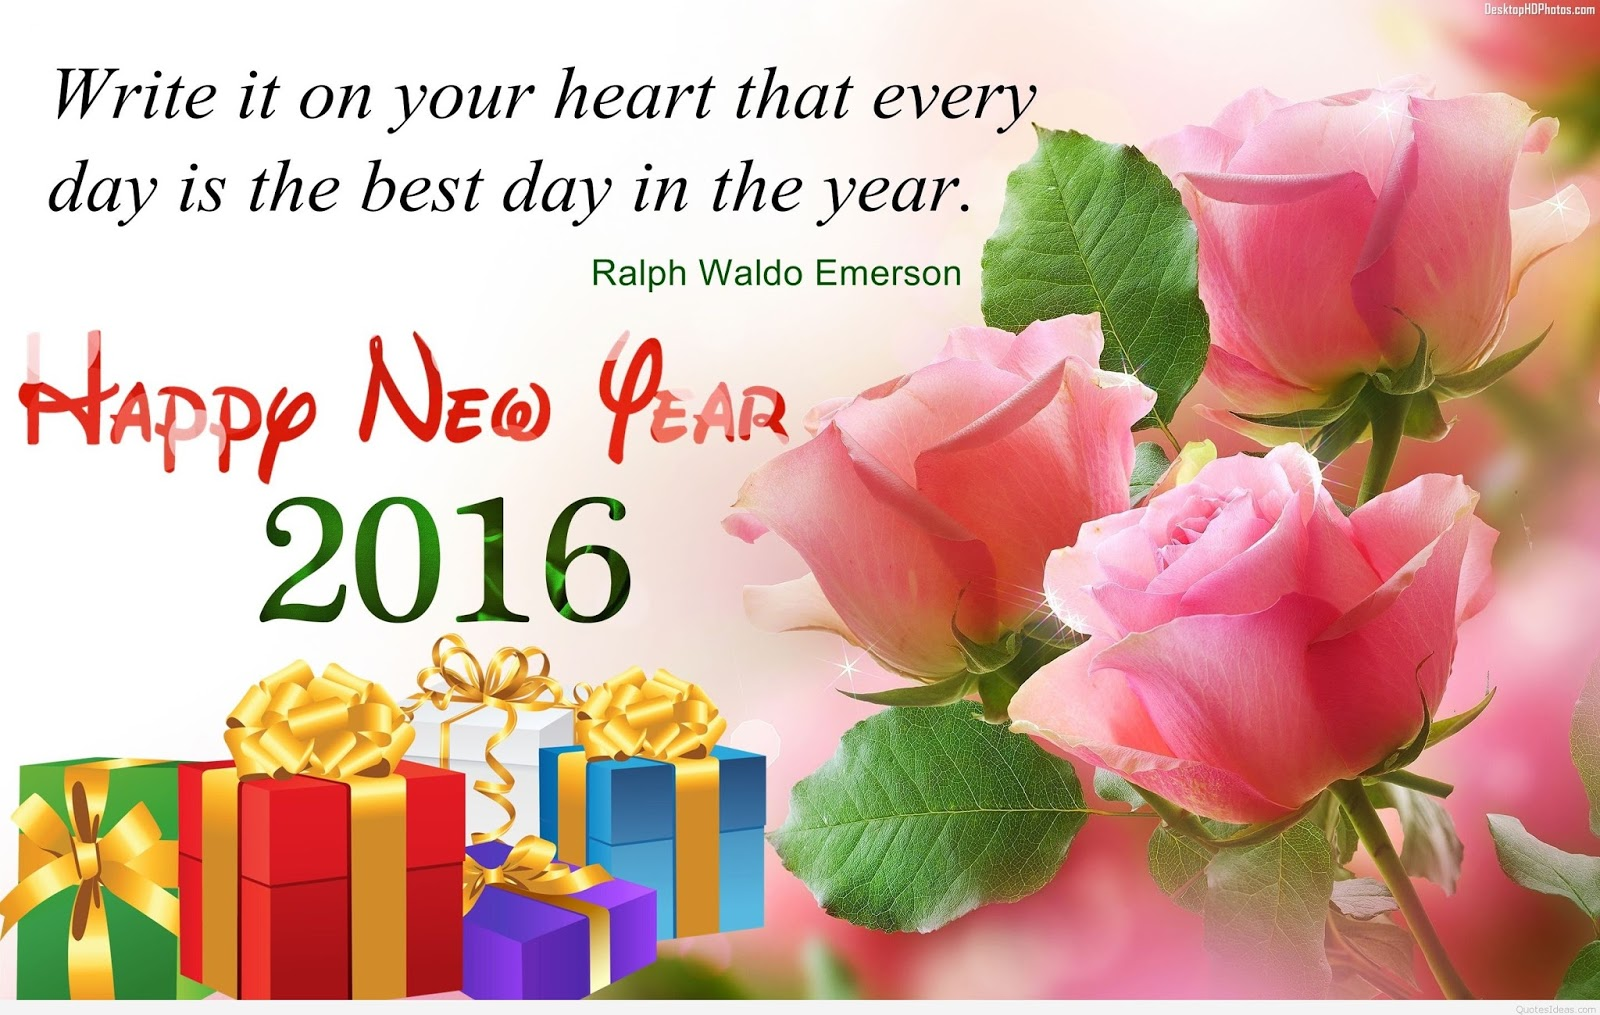 Happy new year 2016 cards happy new year 2016 hd wallpaper happy new year whatsapp images 2016 m4hsunfo